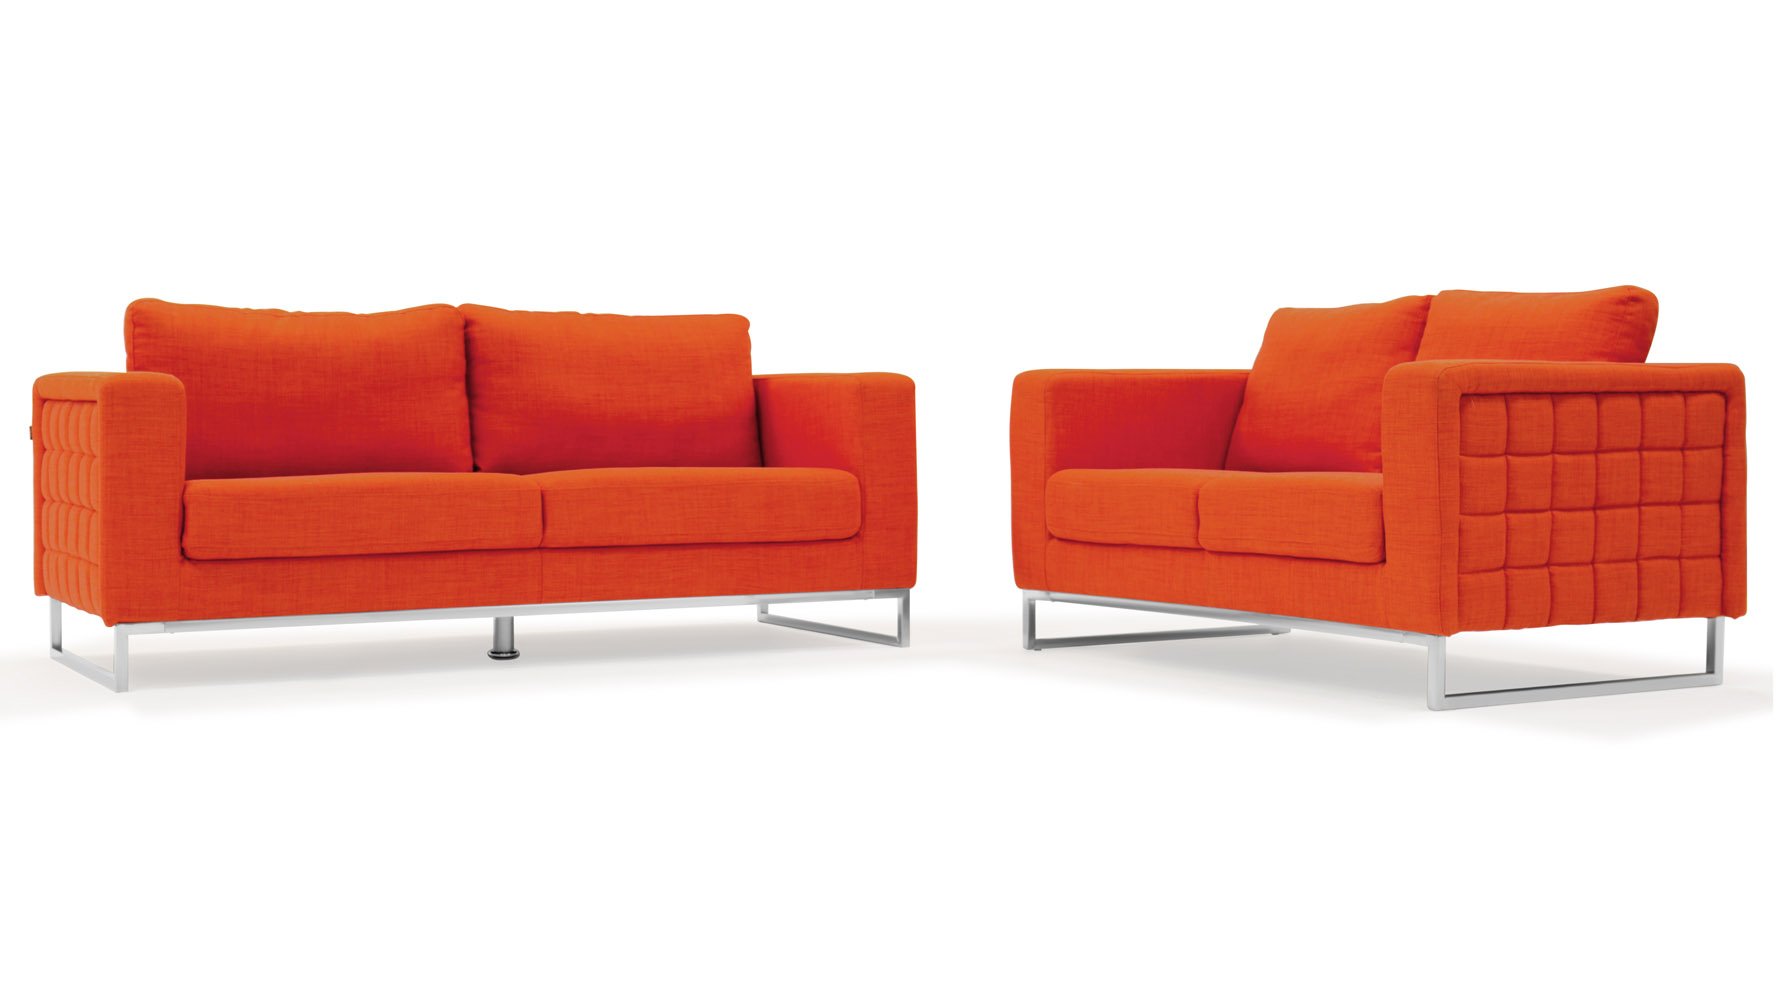 modern orange sofa  Modern Orange Fabric Upholstered 2 Piece Sofa Set with Stainless ...